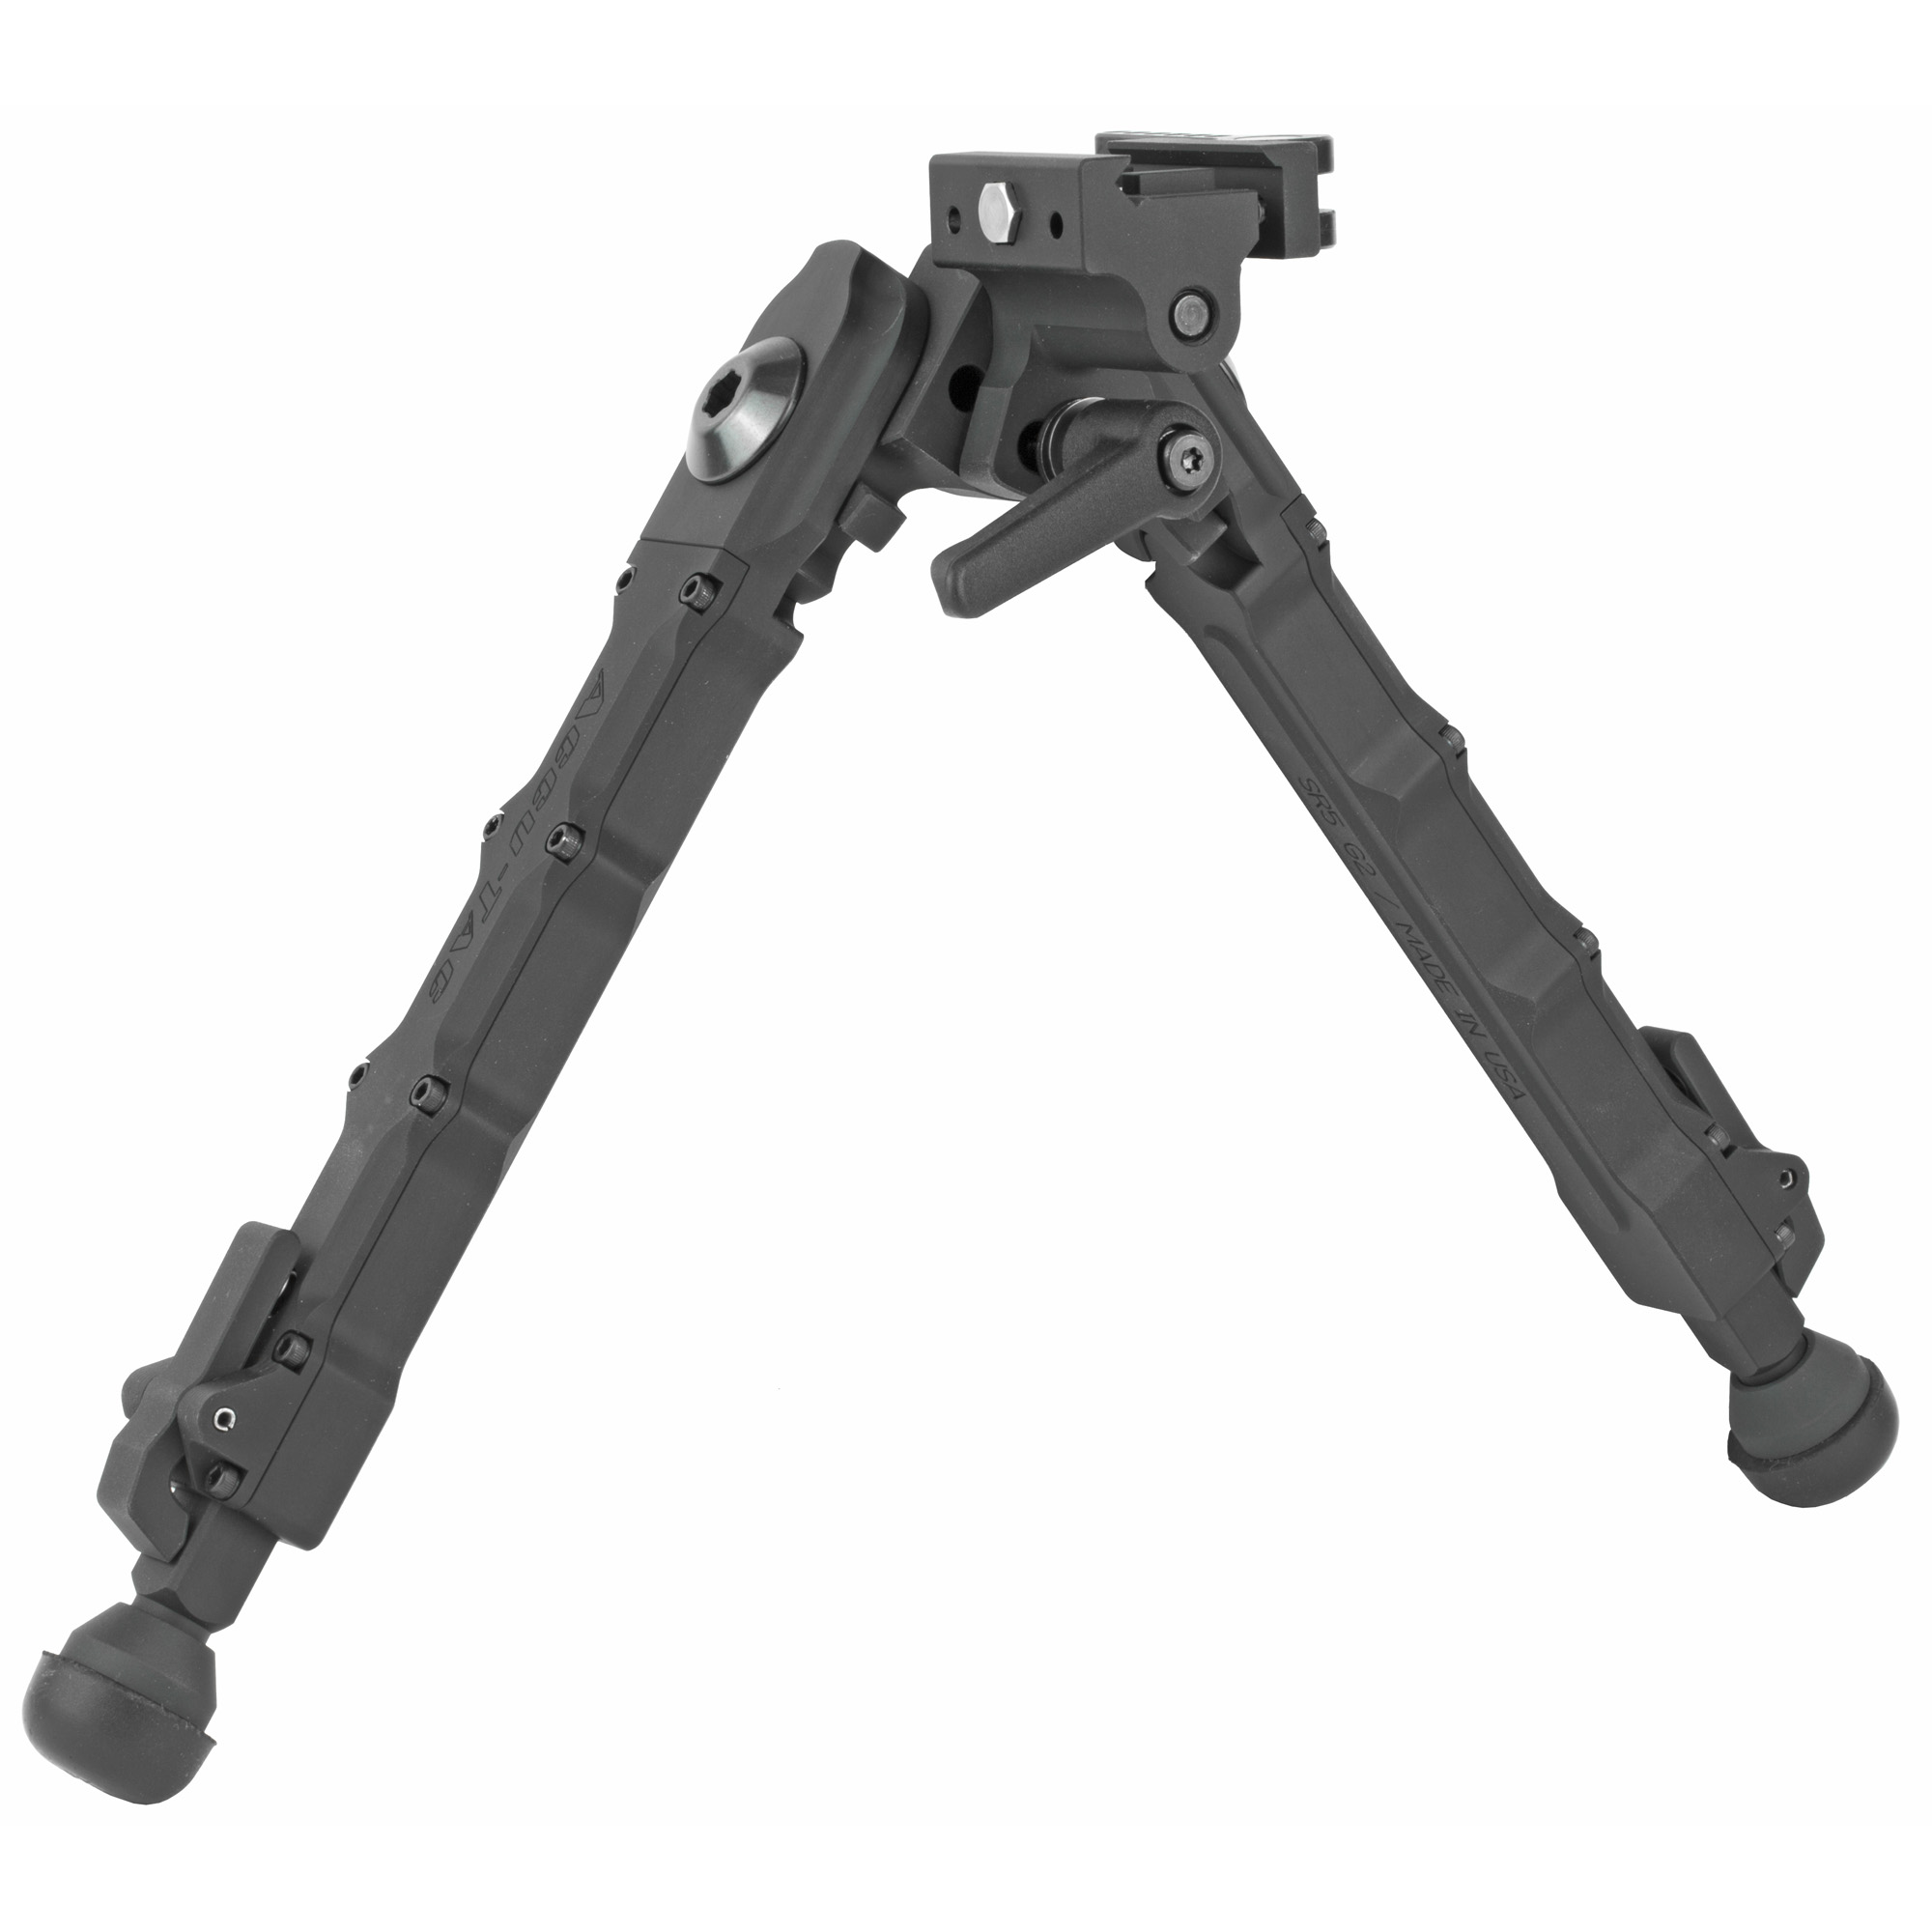 """The Accu-Tac SR-5 Quick Detach Bipod was designed"""" engineered"""" and manufactured in the USA. The SR-5 is 100% billet"""" made from the highest quality aircraft aluminum available. Its wide stance and ratcheted leg extension gives you the adjustability needed for precision aim and repeatability. You will feel the stability and security of your rifle as never felt before. The SR-5 G2 has the ability to cant which can be locked with its new throw lever. Their quick detach rail mount is simple"""" quick"""" and very secure; it attaches to a 1913 Picatinny rail and mounts in seconds without the need to use extra tools for tightening. Their ratcheted leg extension design allows the shooter to quickly adjust to 5 different heights without having to align each leg equally. The spring loaded leg extension retracts quickly with a one-button retraction lever. The retracted leg height of 6 inches extends to a full open position of 10 inches with 3 other positions in-between. To engage or adjust leg position"""" simply pull the spring loaded leg downward to move each leg independently. Leg position can be deployed in a 90 degree"""" 45 degree position either forwards or backwards"""" locking securely into 5 positions through a 180 degree arc."""